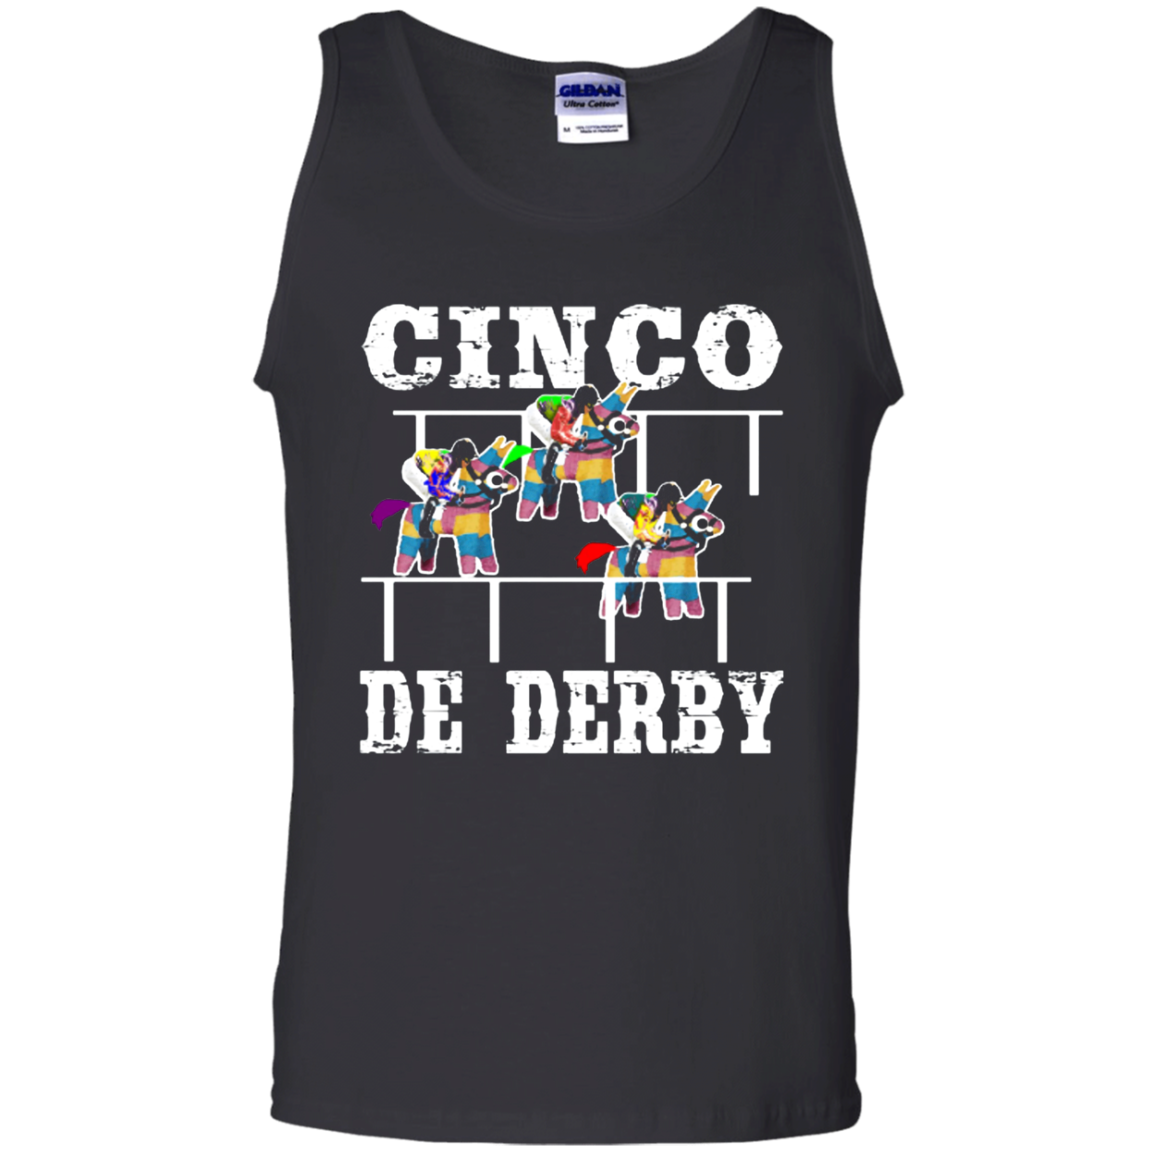 Cinco De Derby De Mayo Kentucky Horse Race Mexican shirt Cotton Tank Top Men